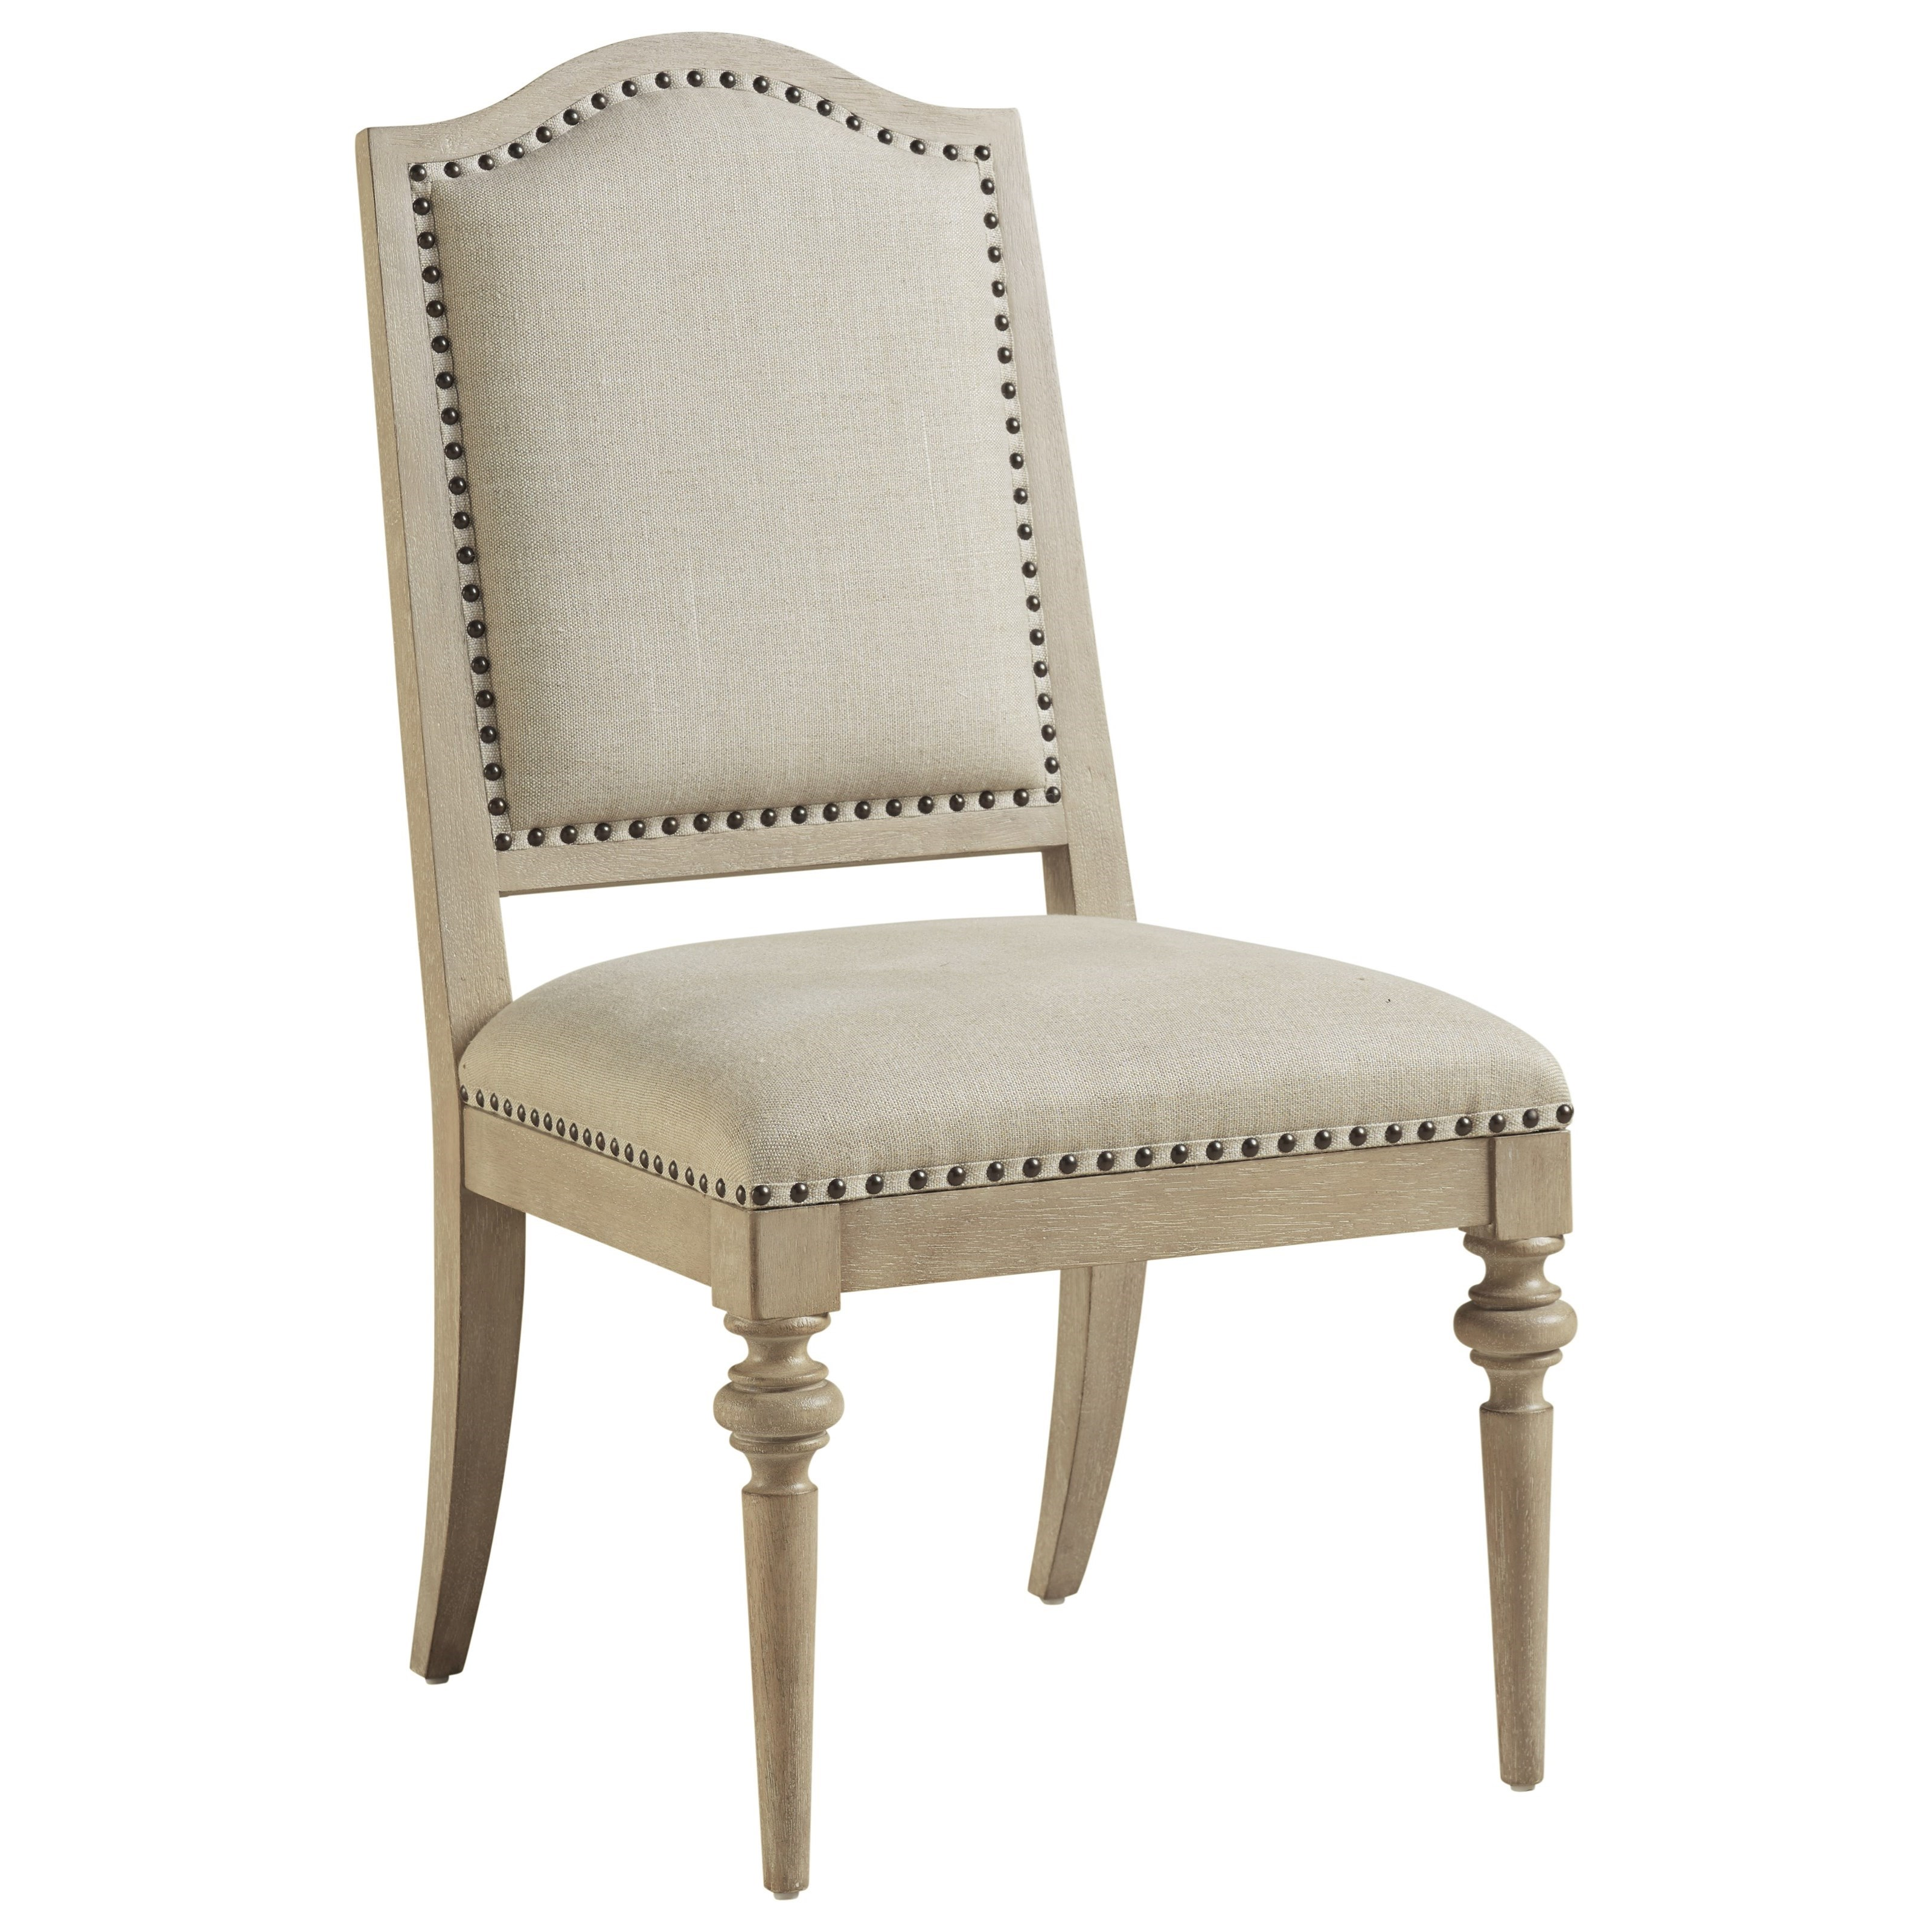 Malibu Aidan Upholstered Side Chair by Barclay Butera at Baer's Furniture